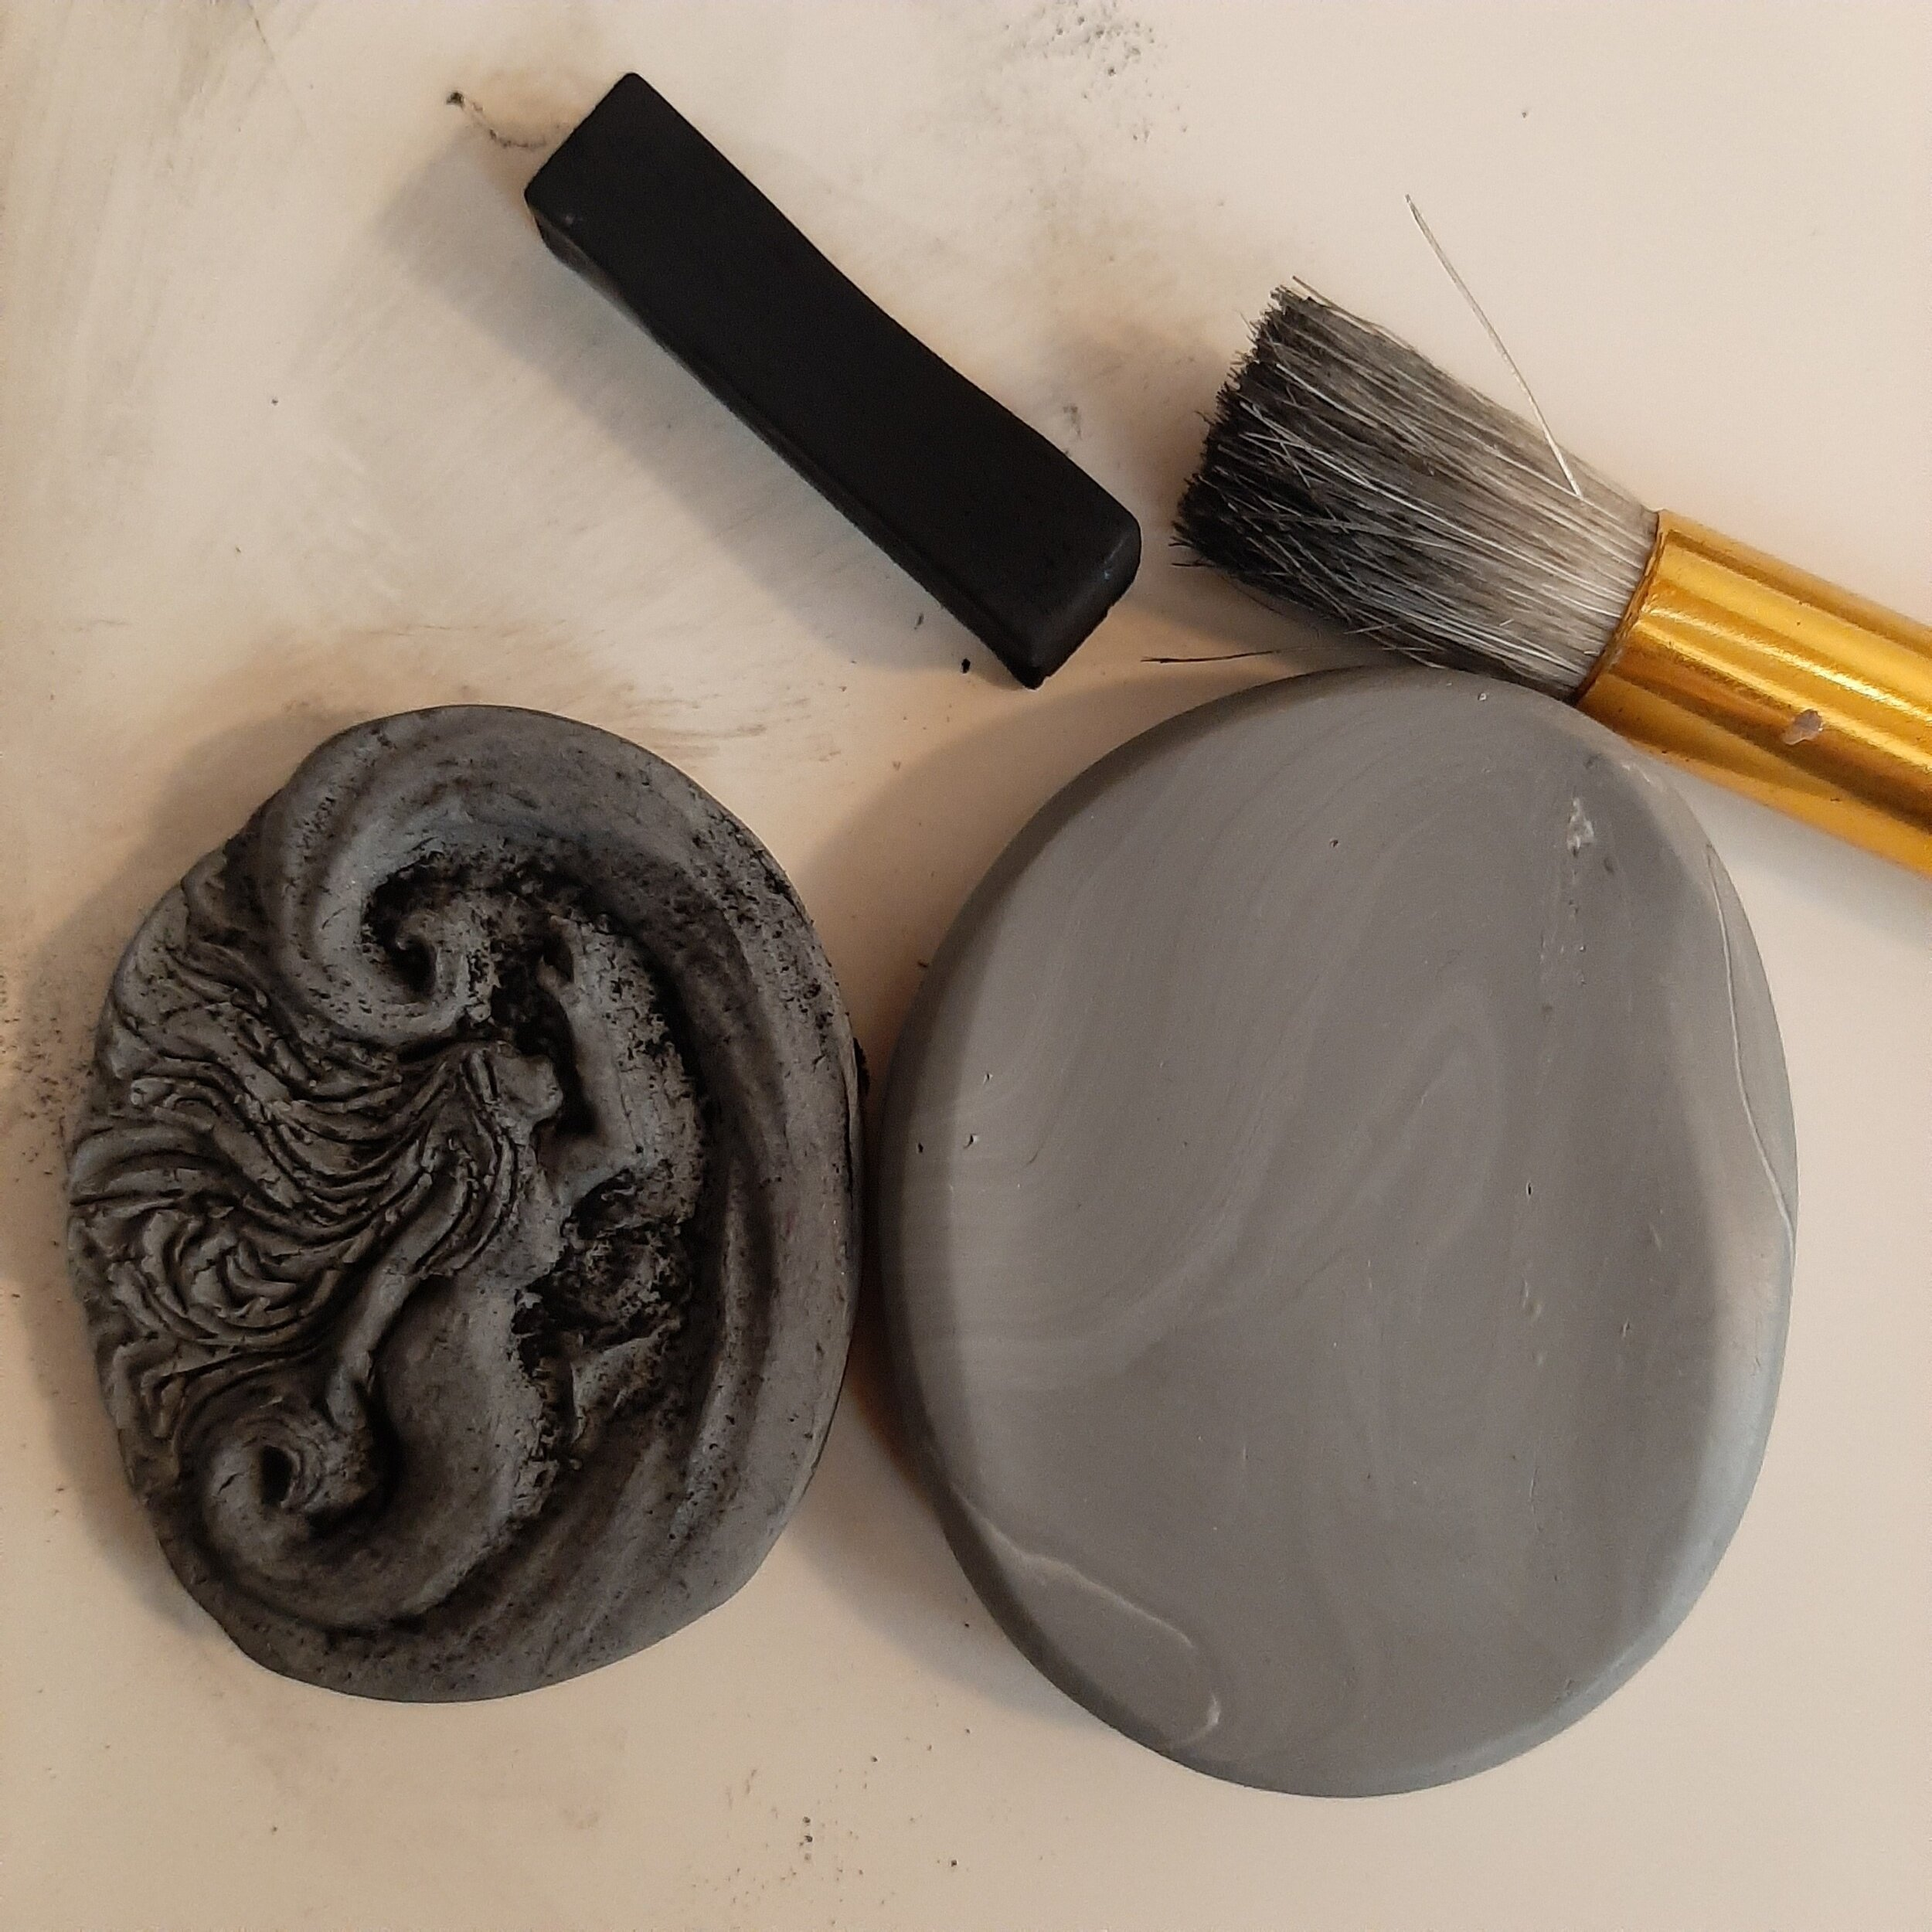 Prepare for a Mold - Condition more clay and roll it out to a little thicker than the baked piece. With chalk pastels, dust the baked piece throughly. (For extra ease of mold release, you can put more directly onto the raw clay.)